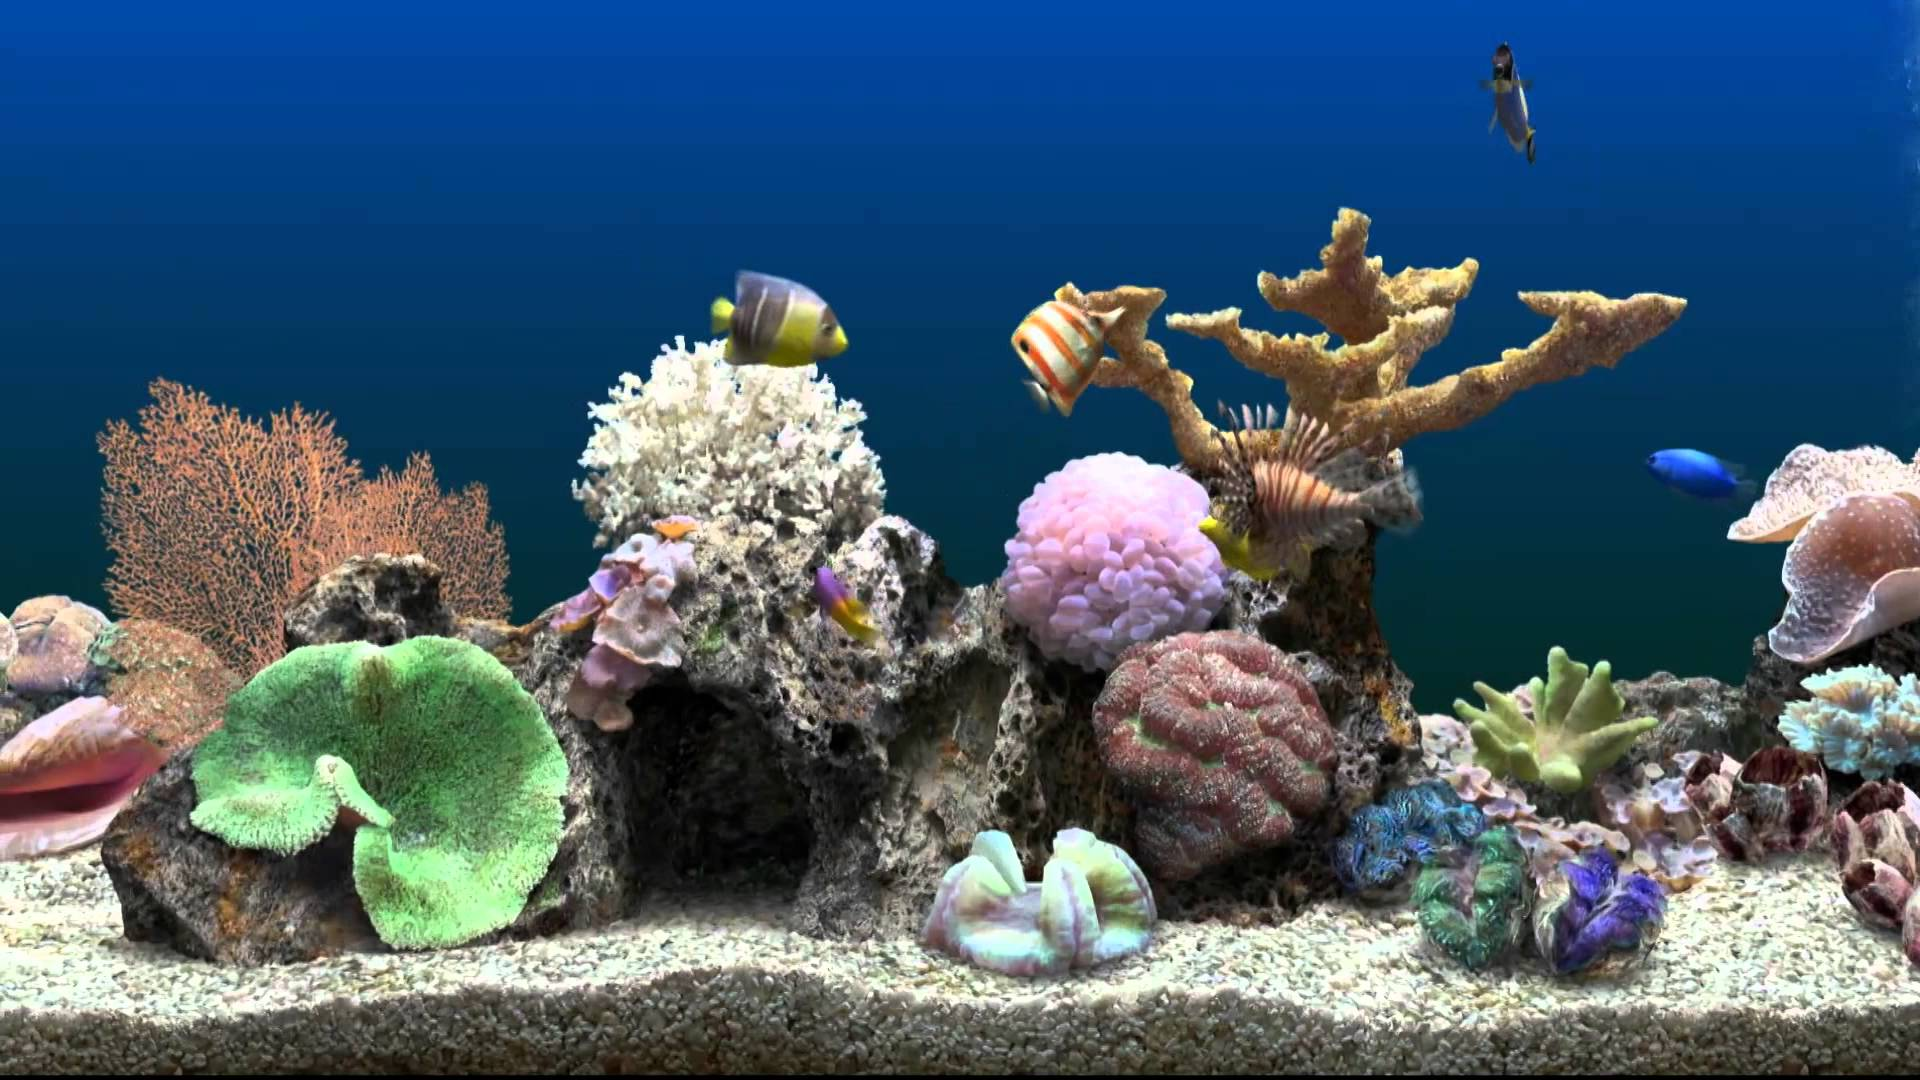 Marine aquarium wallpaper wallpapersafari for 3d fish wallpaper